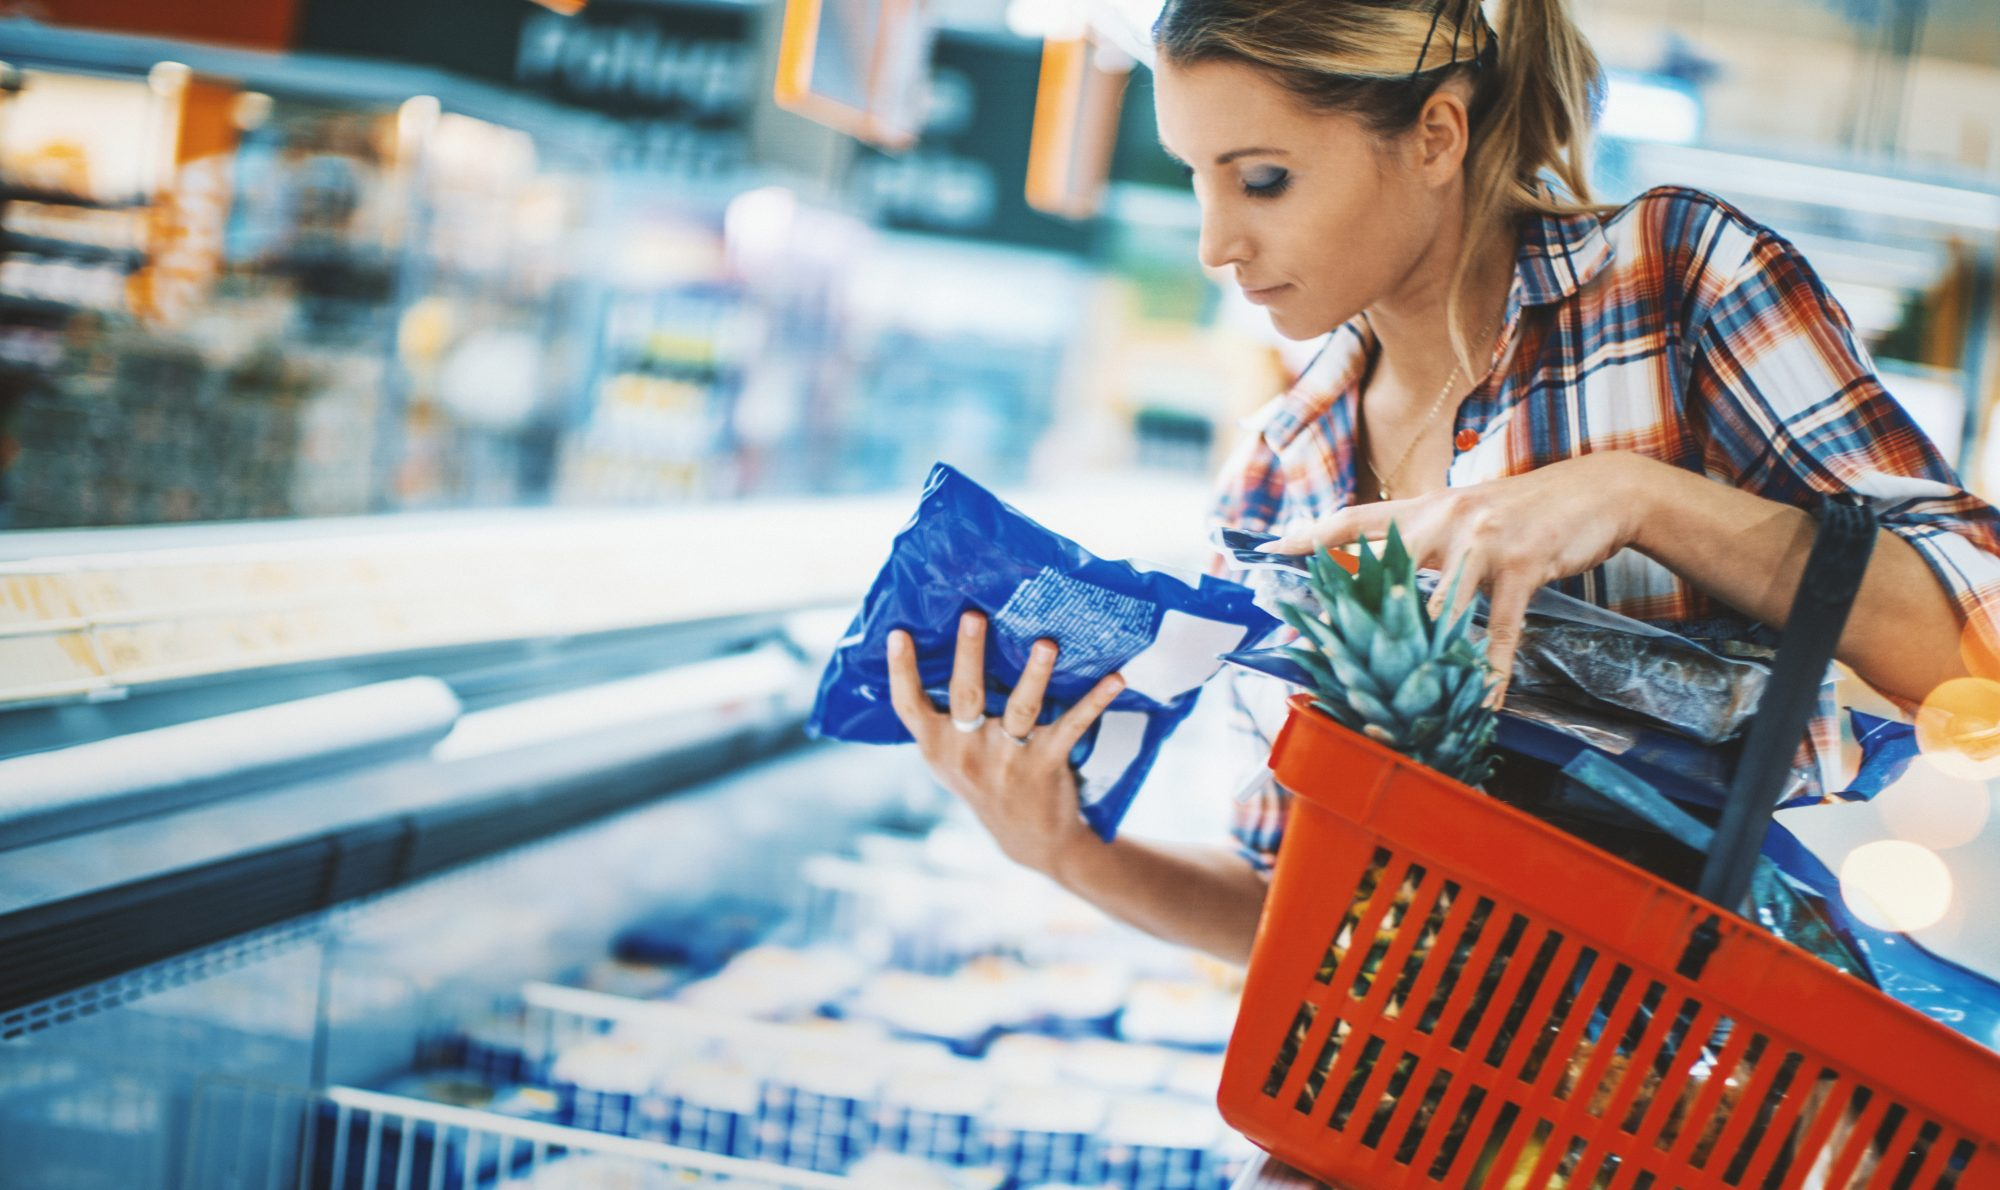 Can This Startup Make Money by Calling B.S. on Food Nutrition Labels?